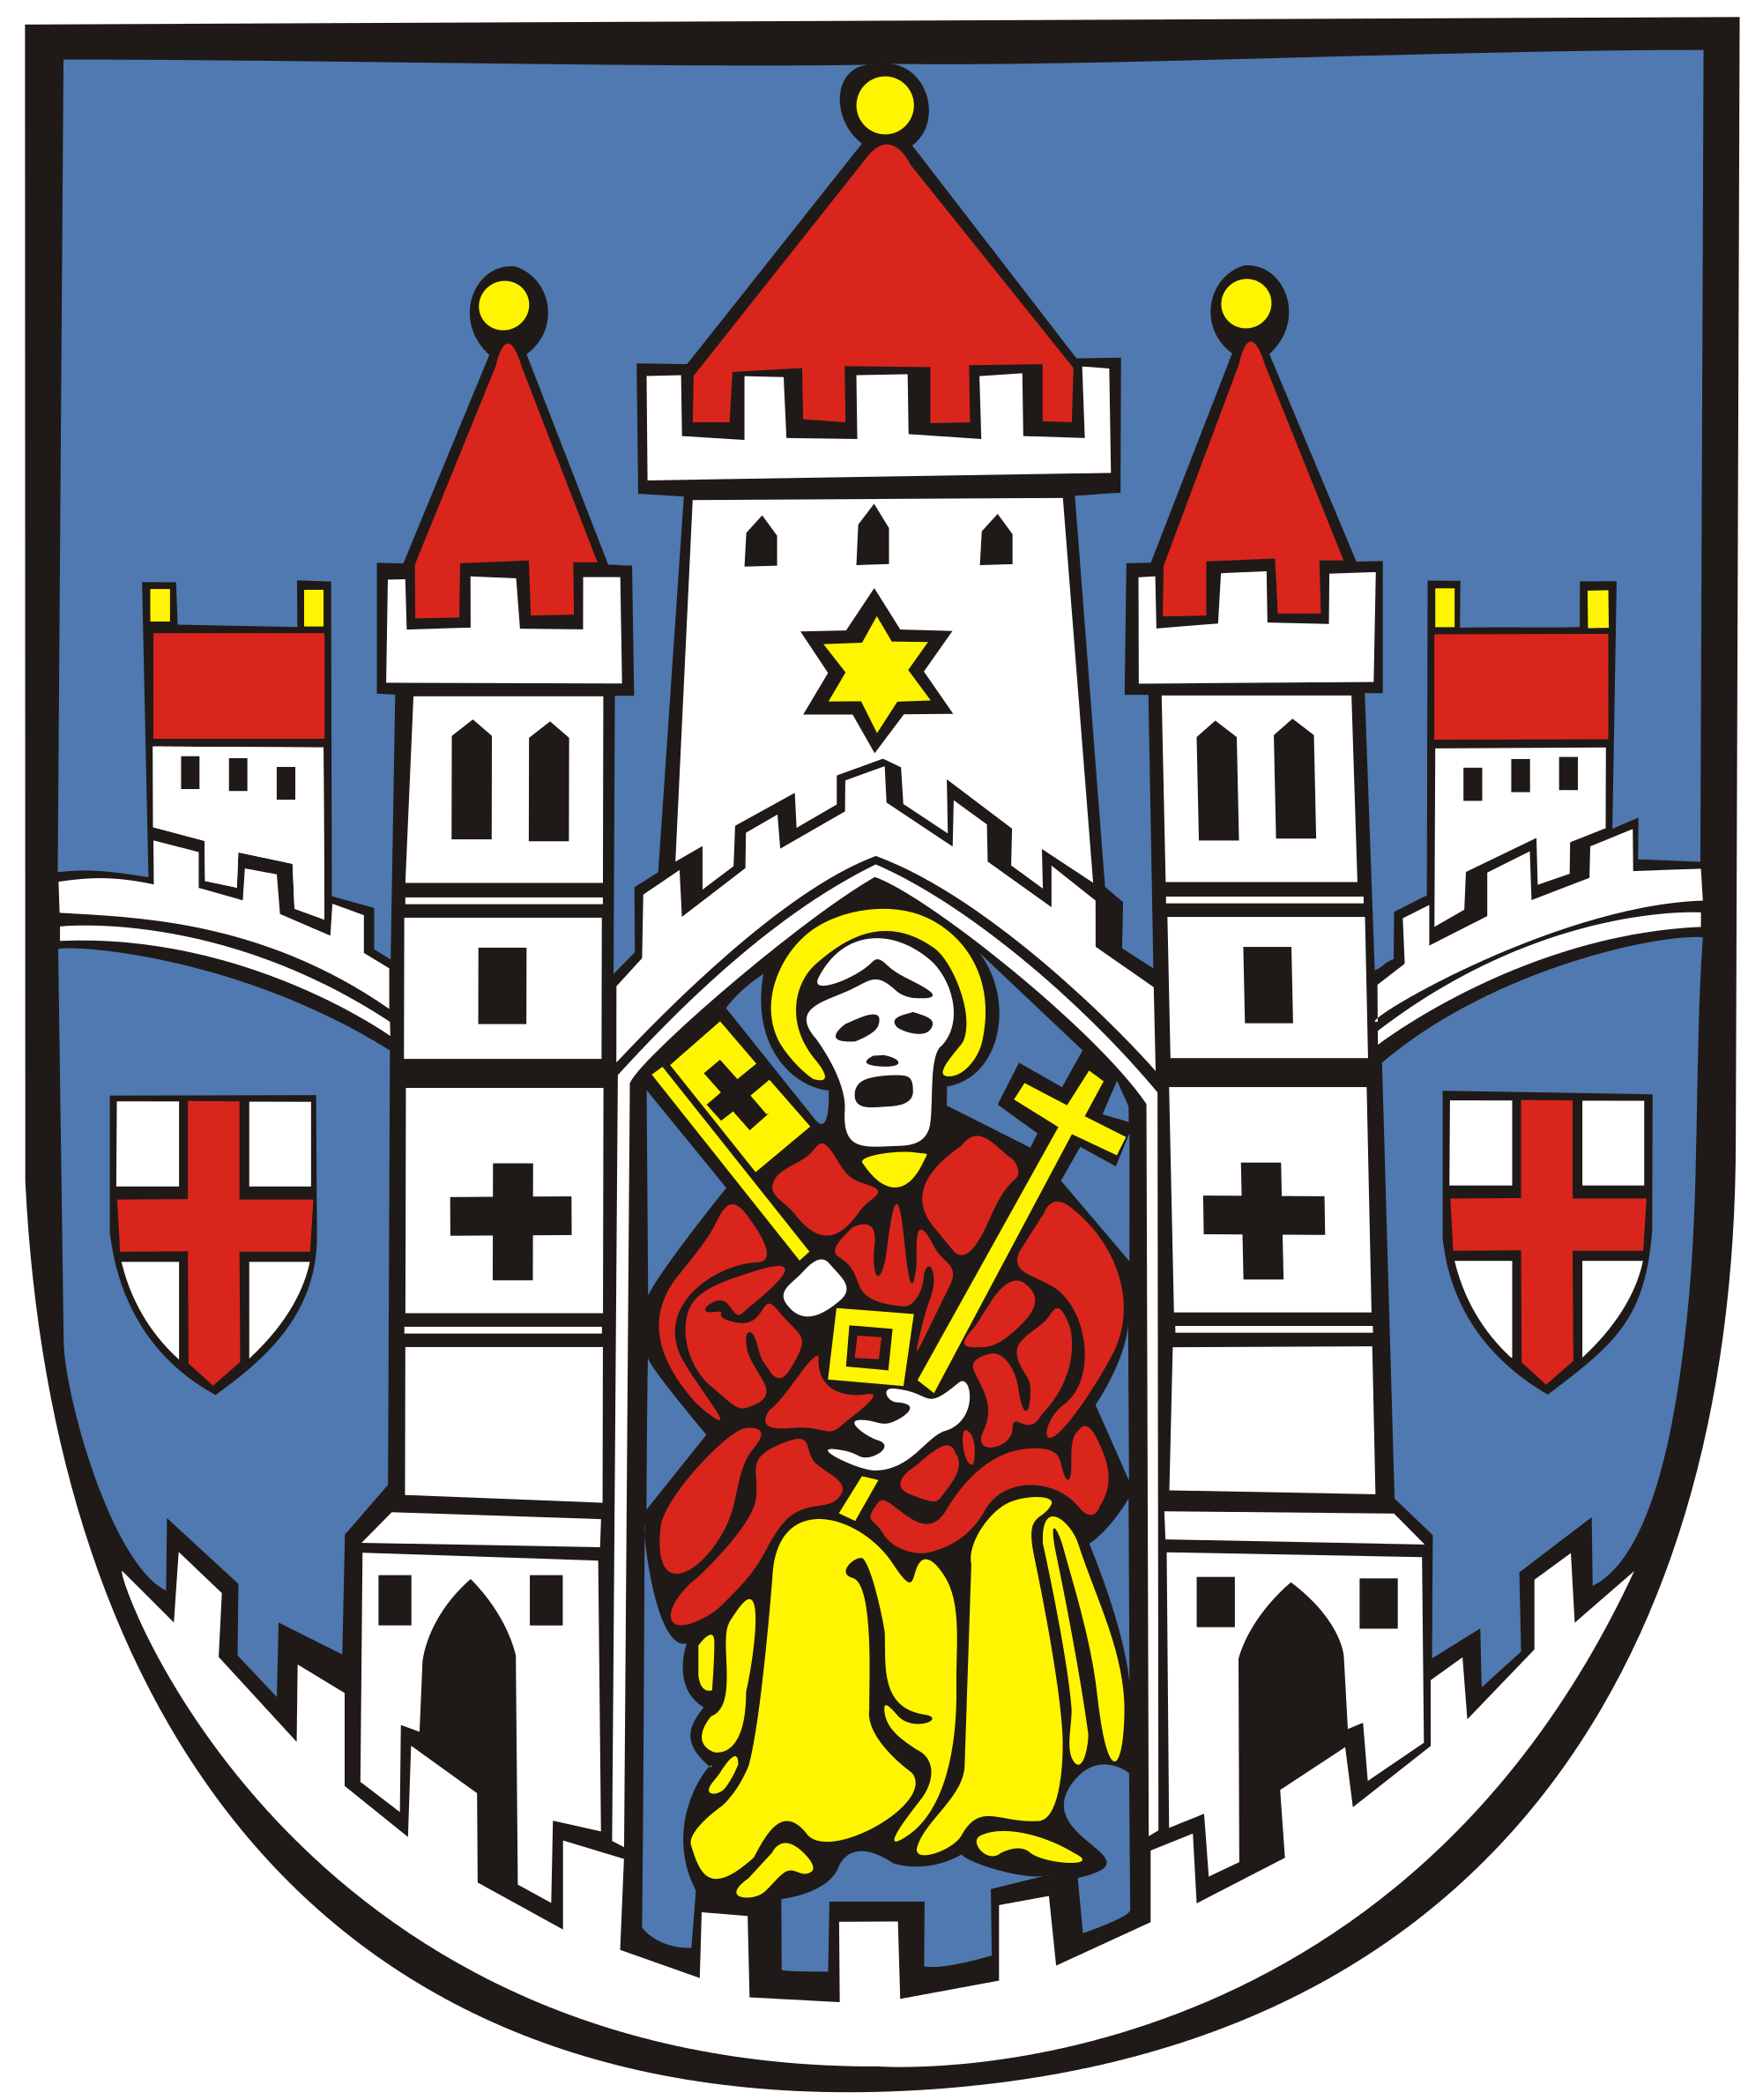 File:Coat of arms of Montabaur.svg.